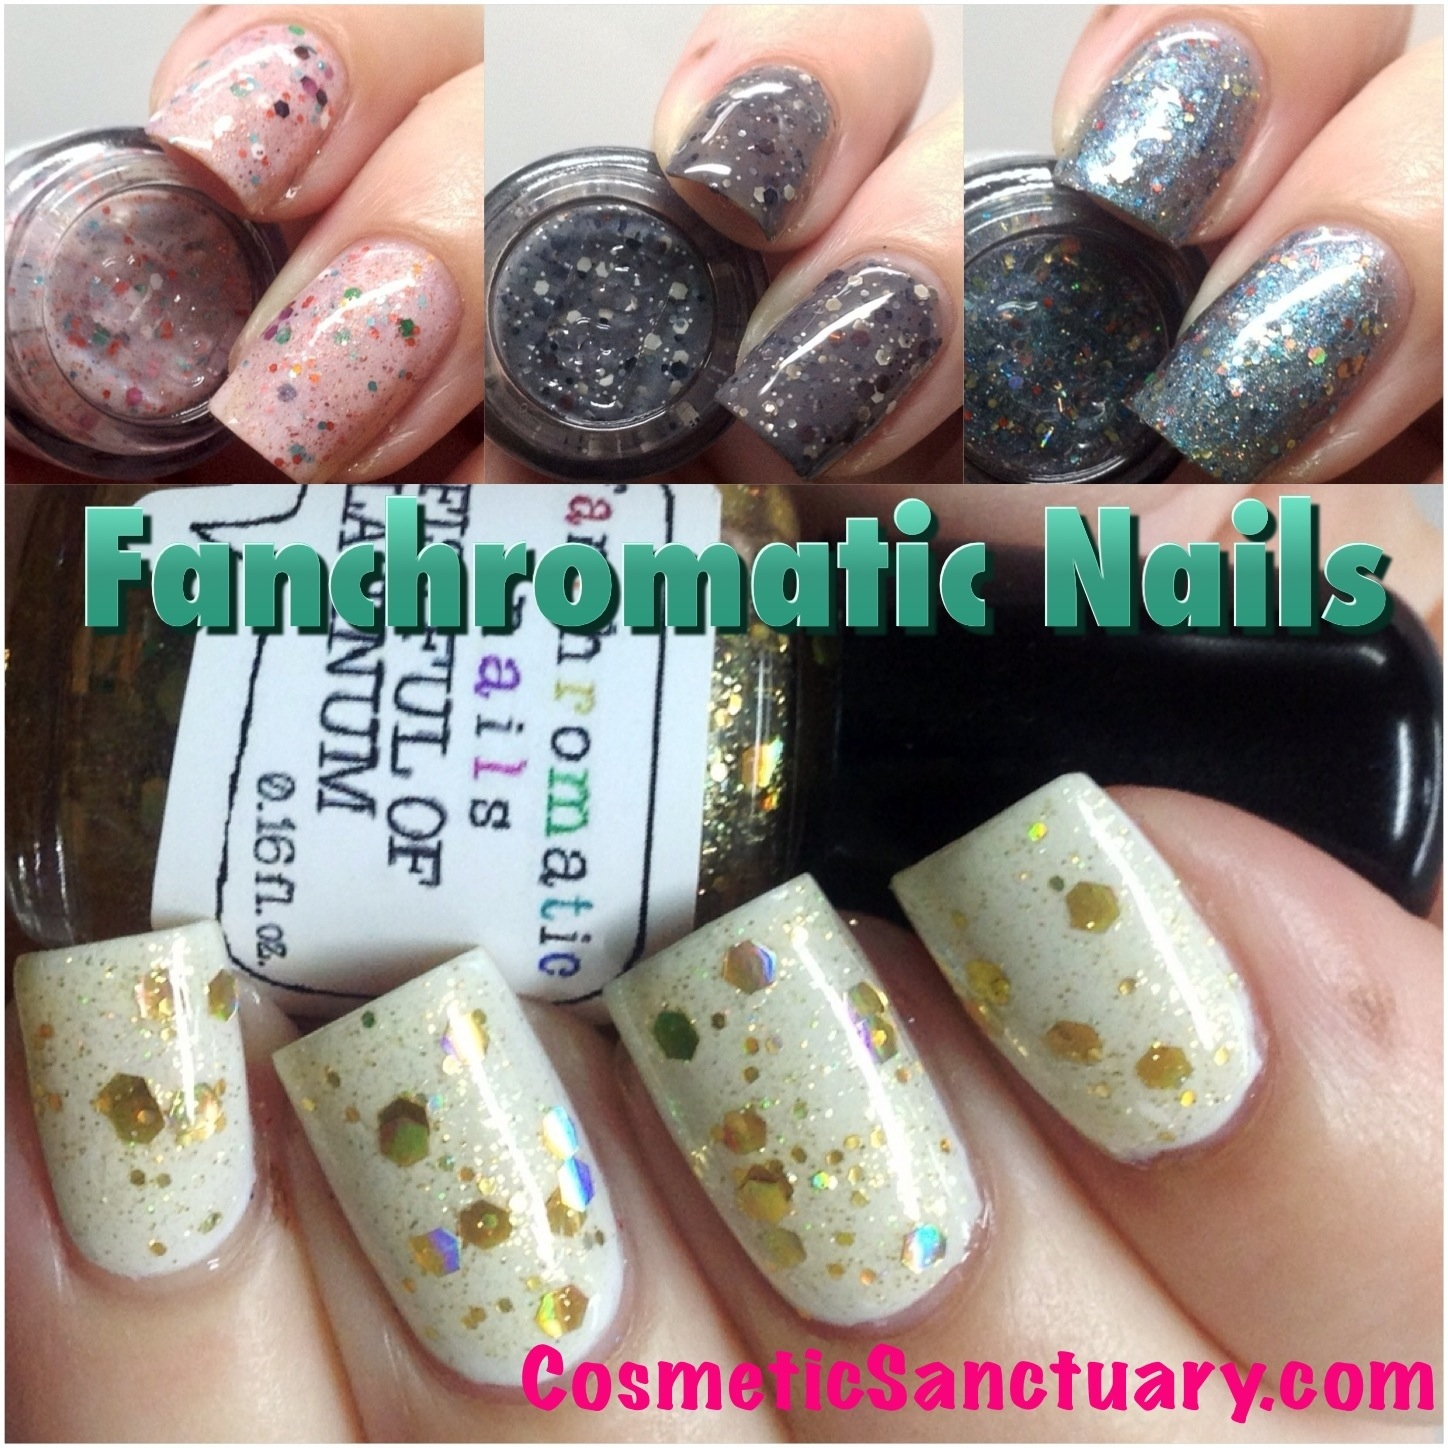 Fanchromatic Nails Swatches and Review